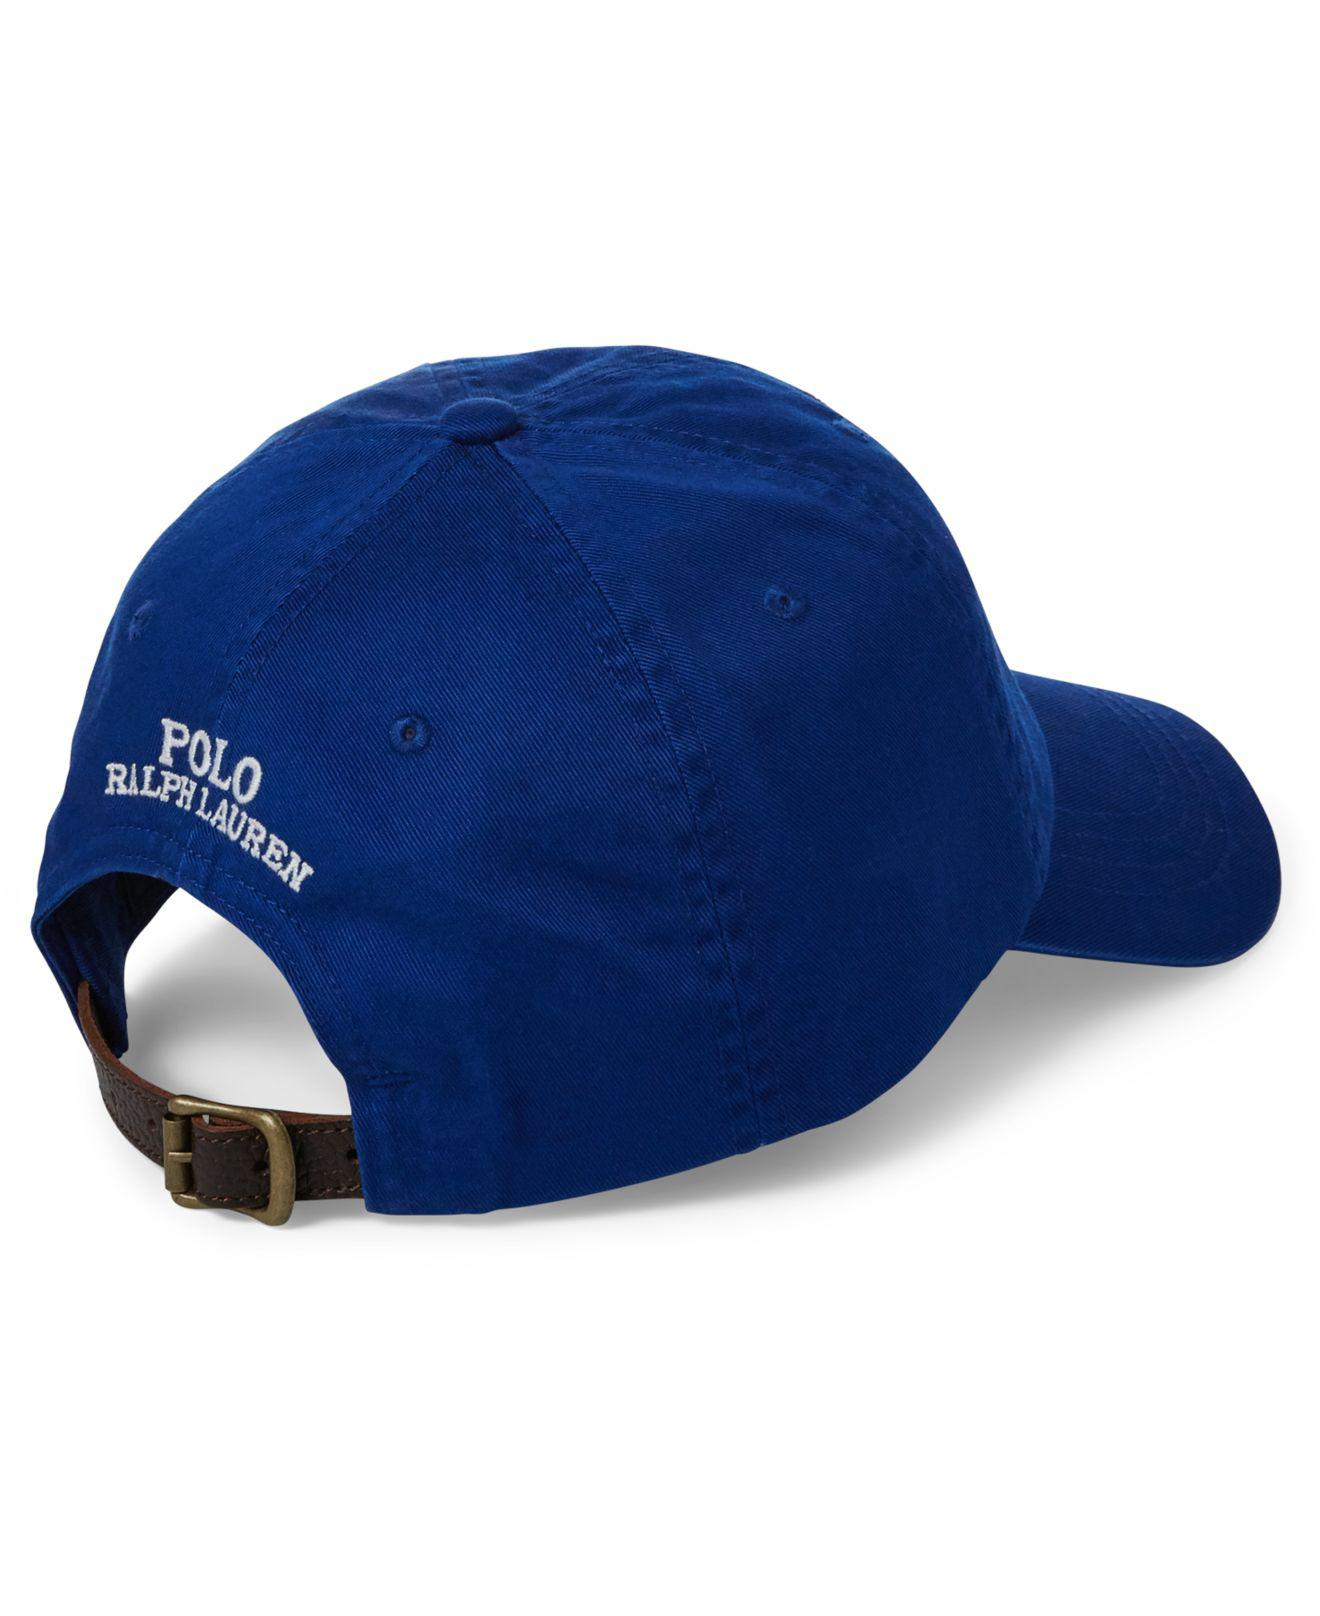 Lyst - Polo Ralph Lauren Polo Bear Baseball Cap in Blue for Men newest  collection c589c ... 7d456de566bf